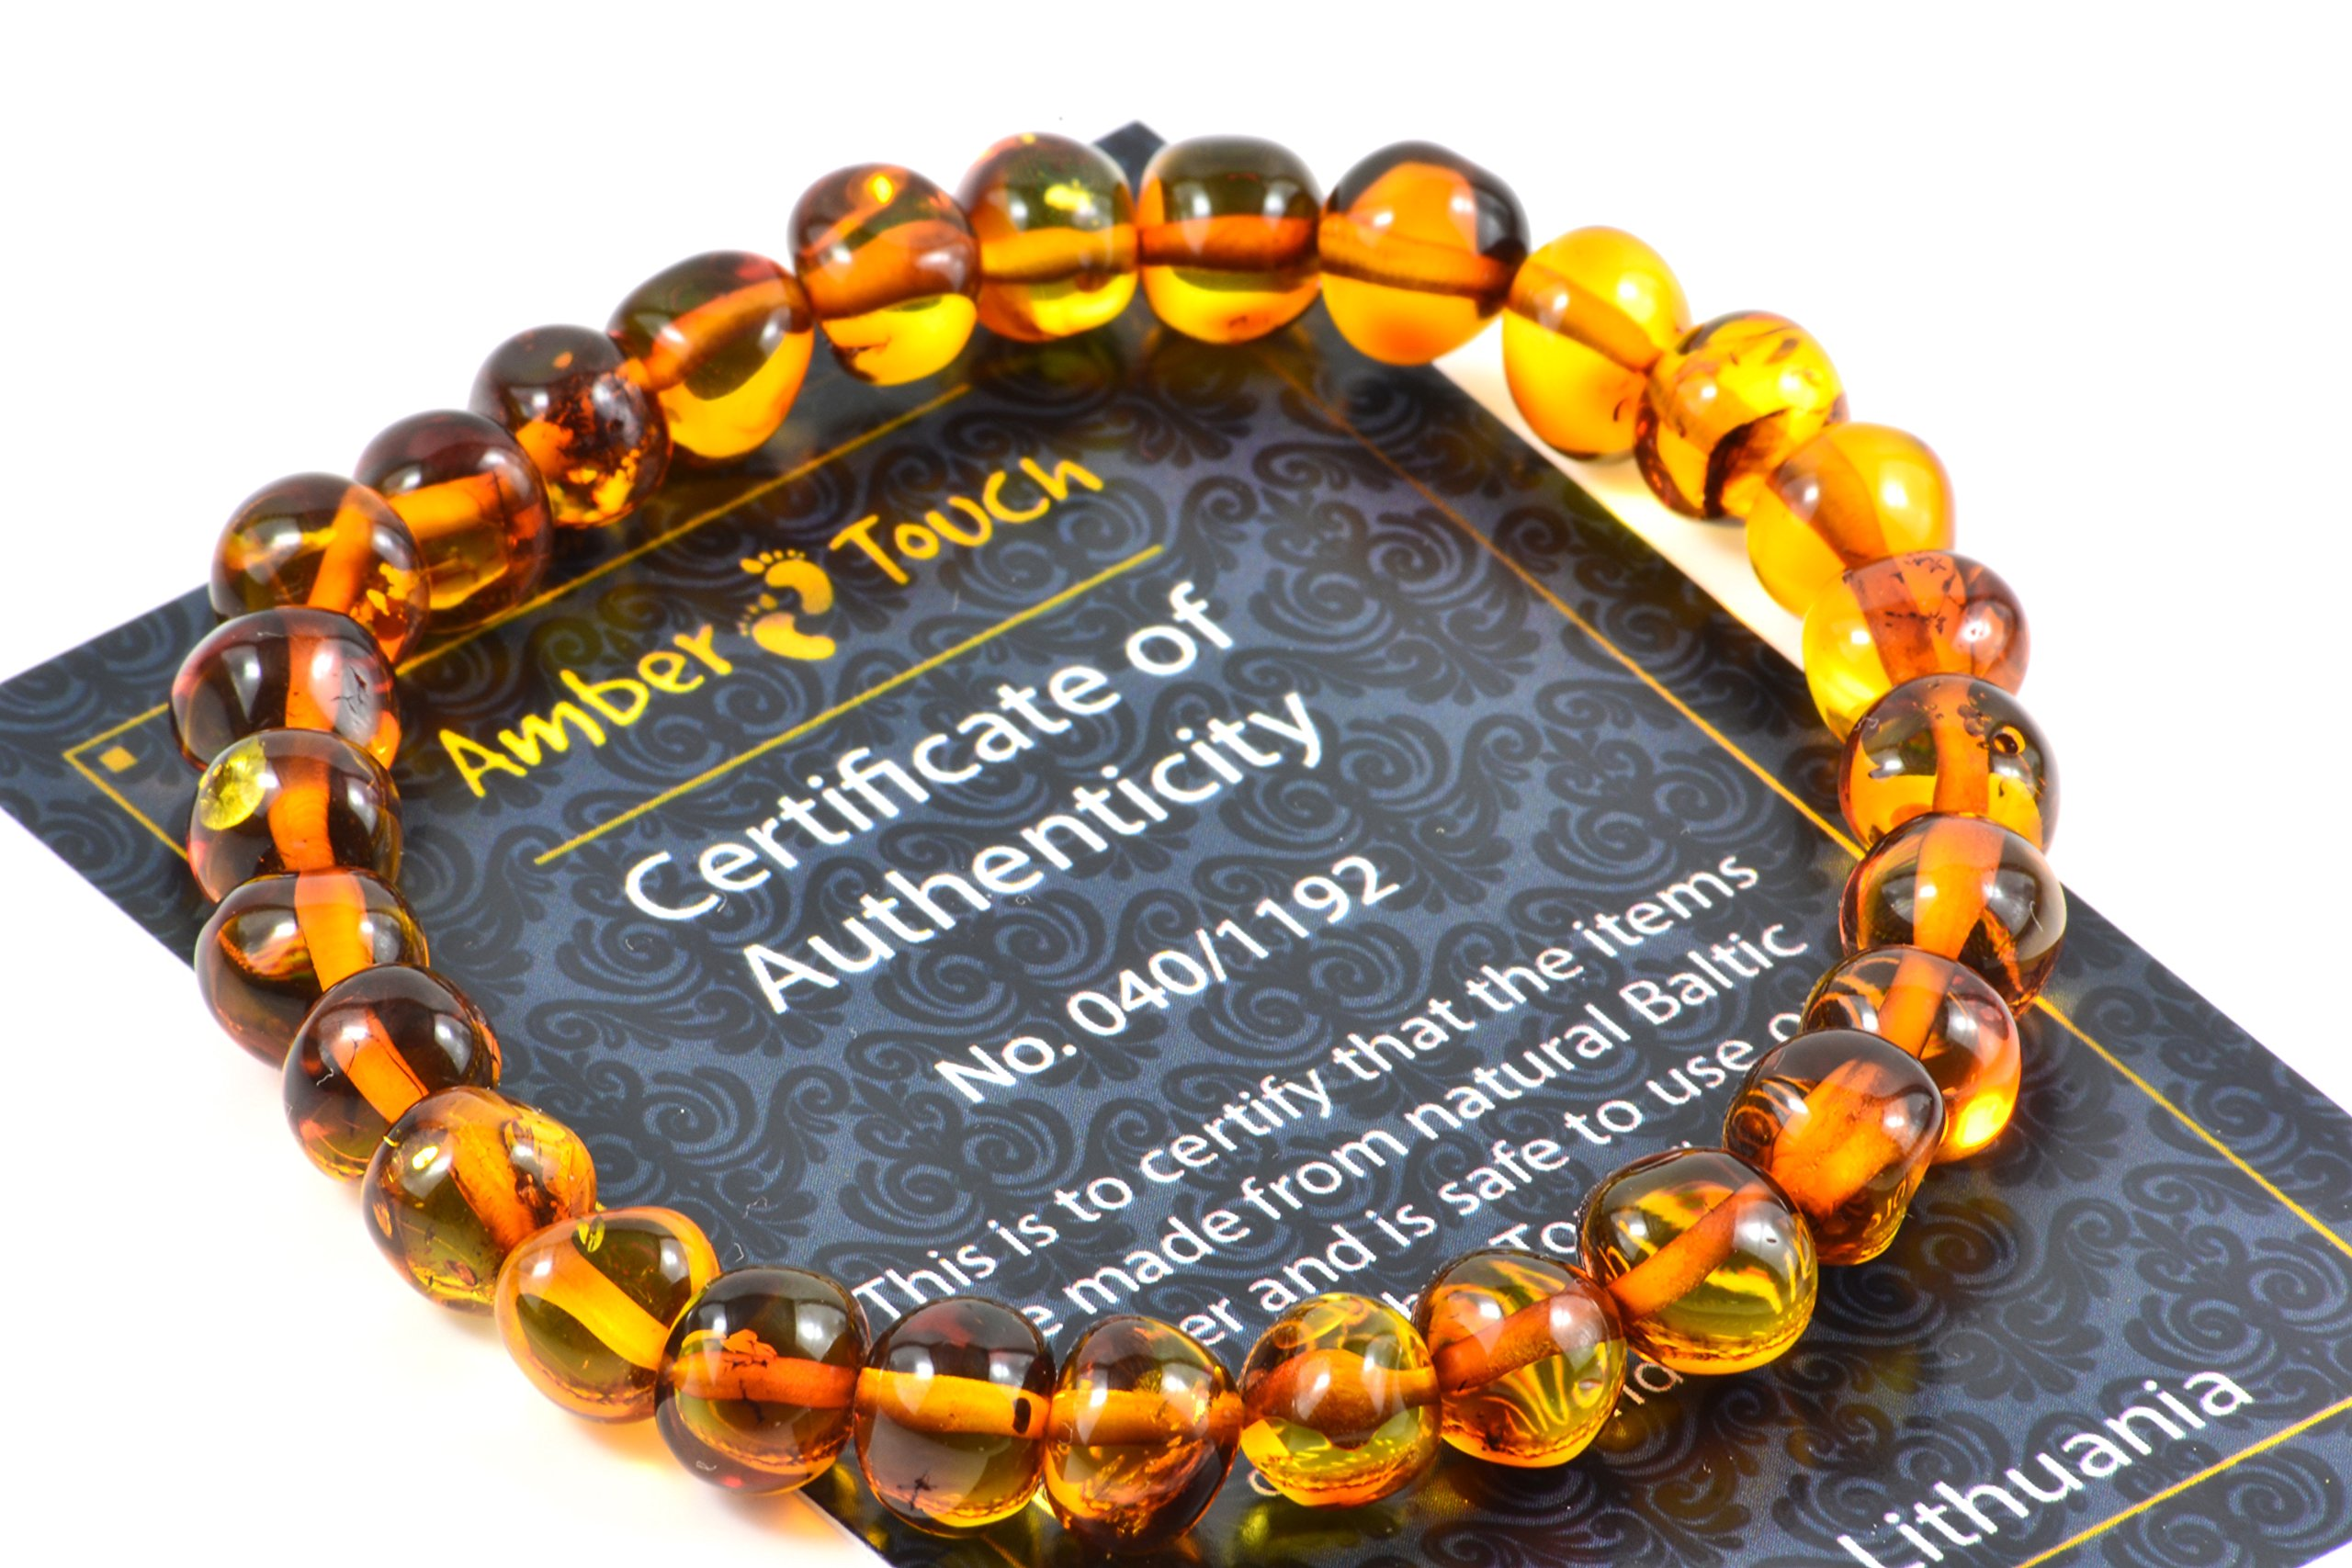 Baltic Amber Bracelet for Adults made on Elastic Band - Carpal Tunnel, Arthritis, Headache, Migraine Pain Relief (Cognac, 7.5 inch.) by Amber-Touch